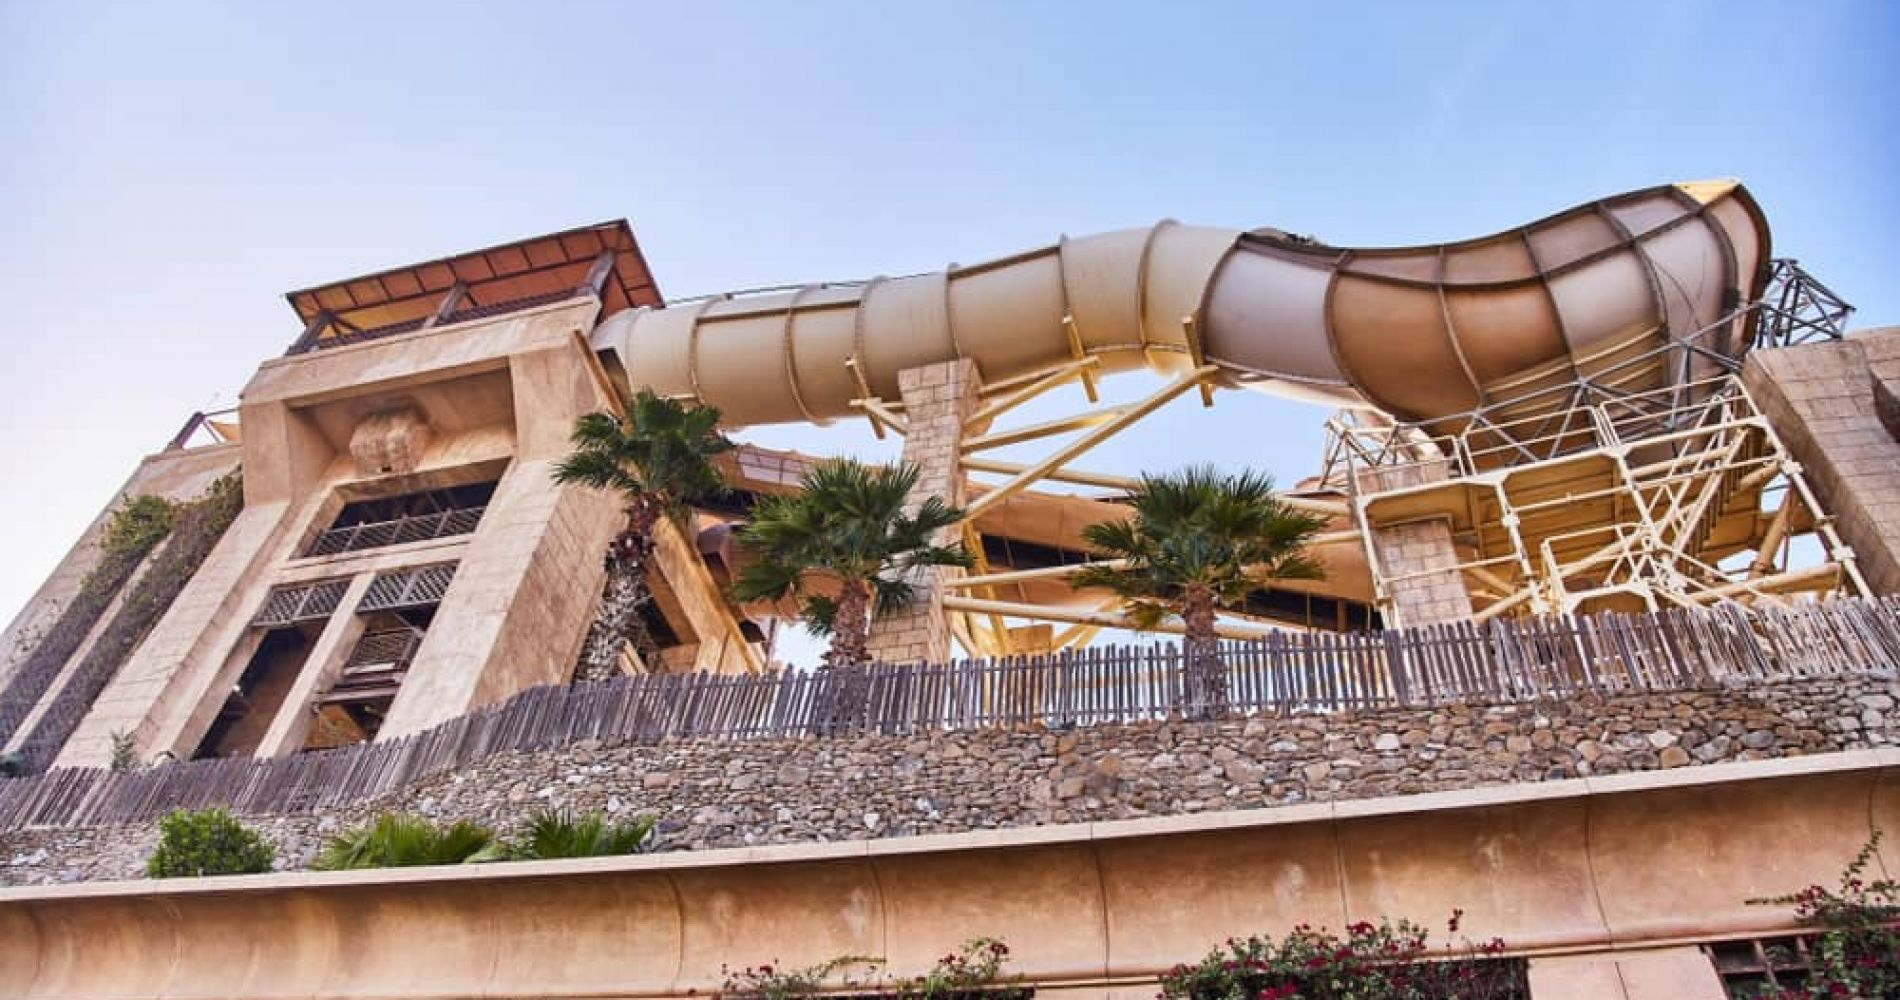 Aquaventure Waterpark at Atlantis The Palm and other Dubai attractions